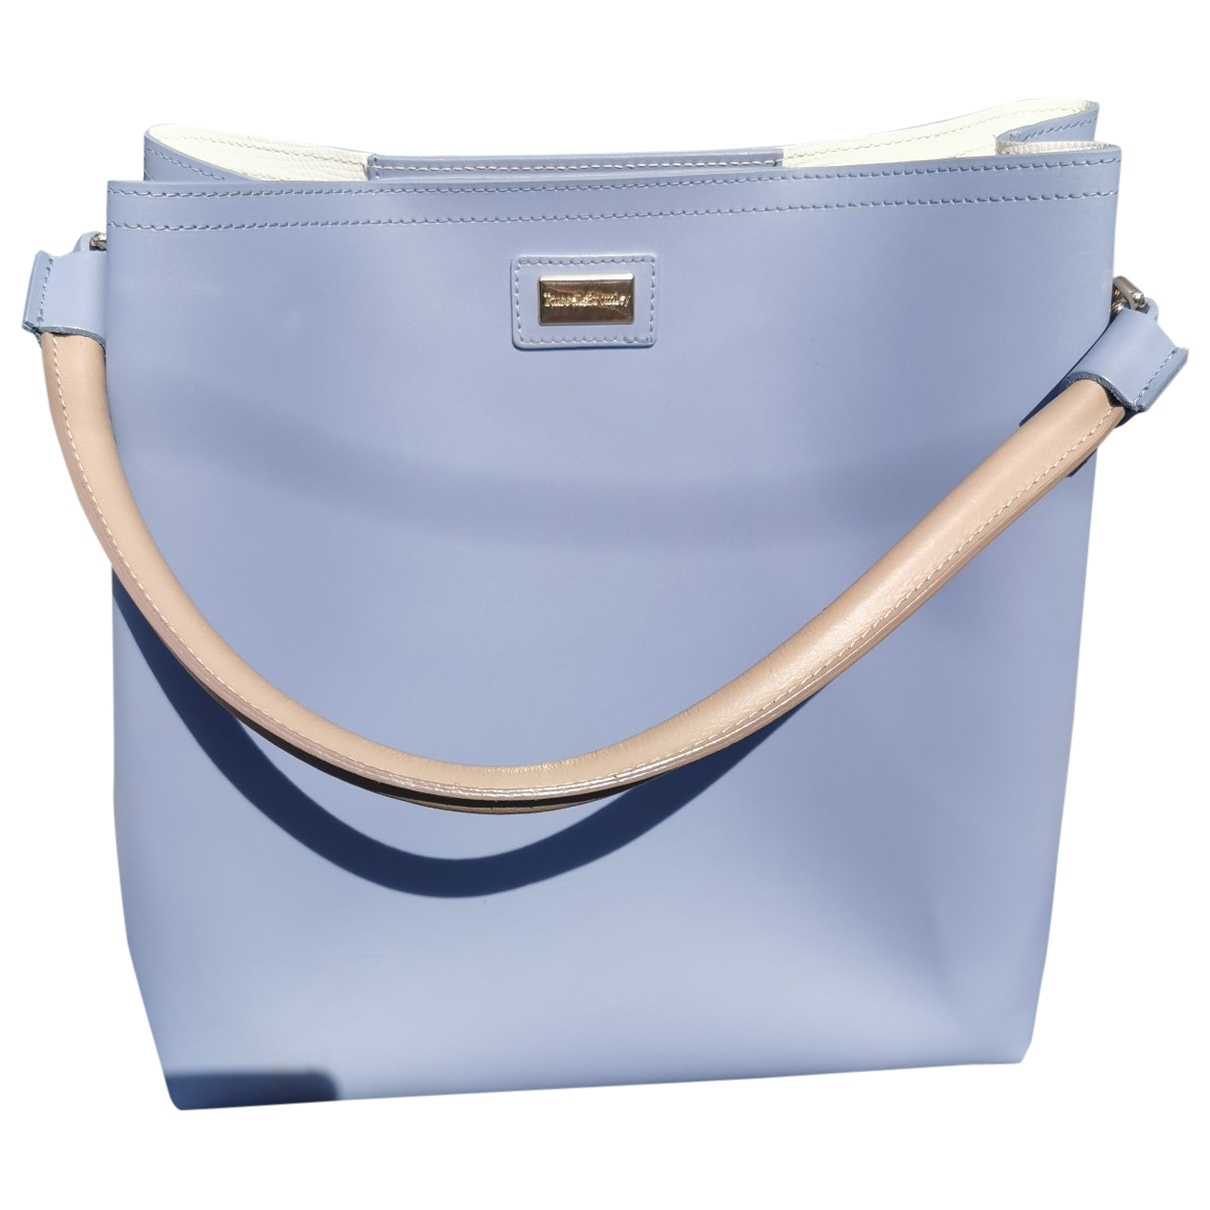 Russell & Bromley \N Blue Leather handbag for Women \N